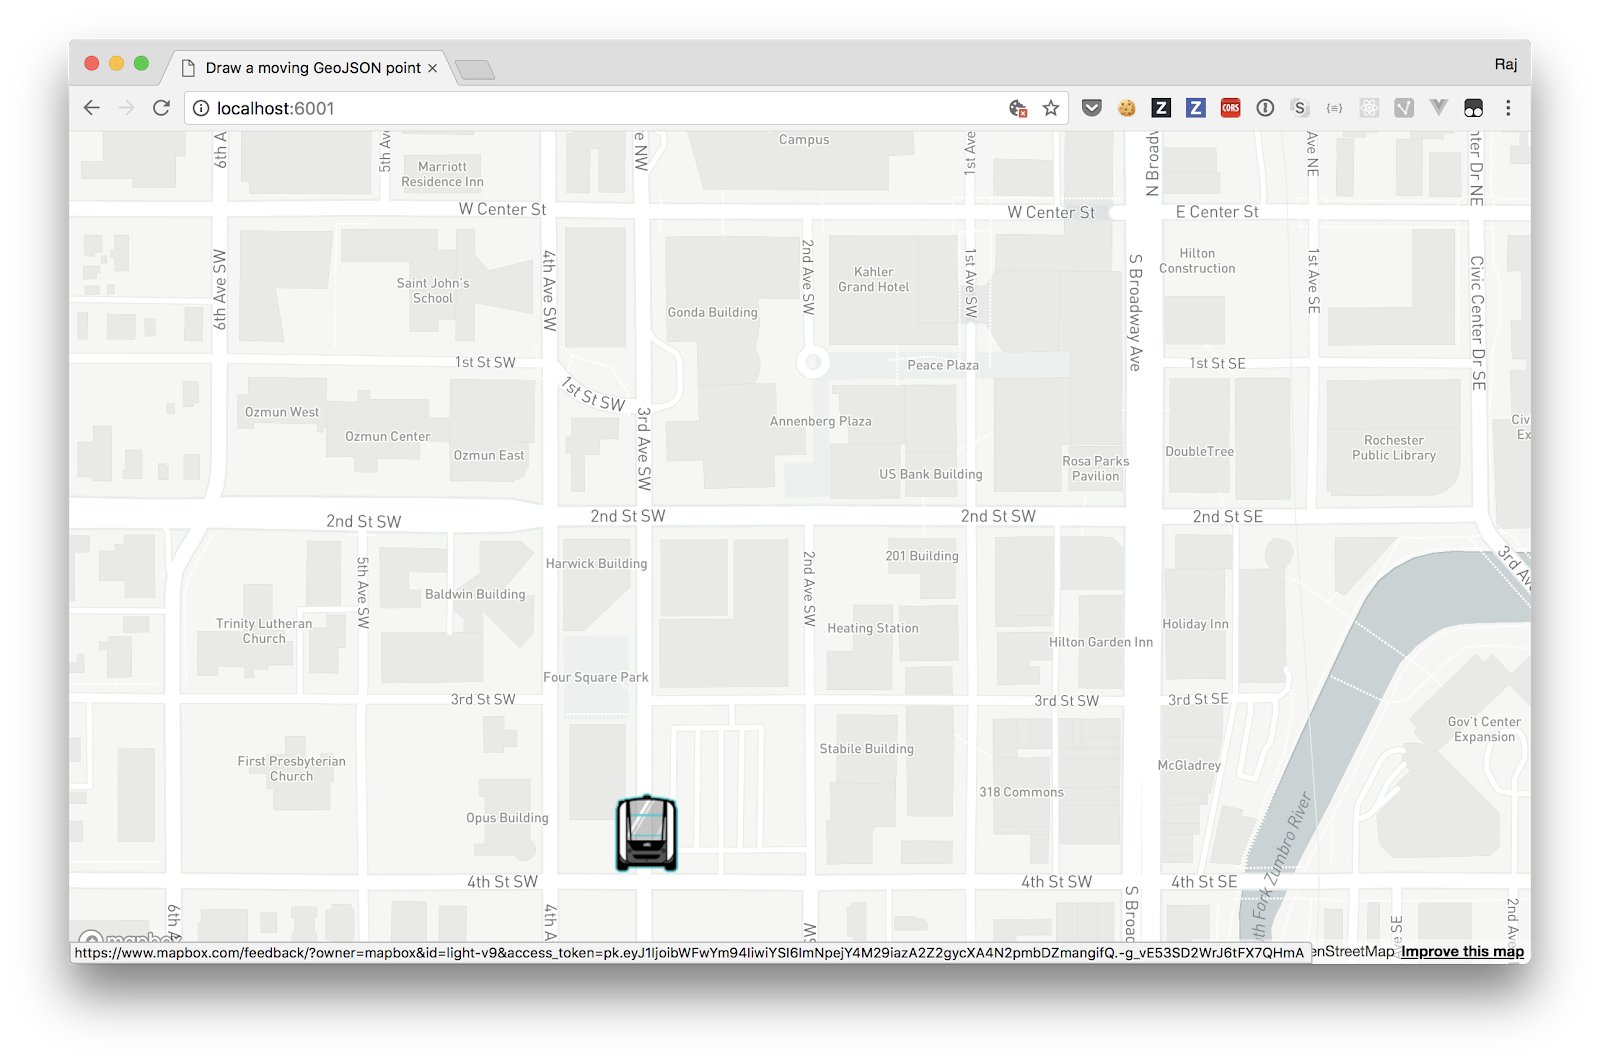 Mapping moving objects with Mapbox and a self-driving bus